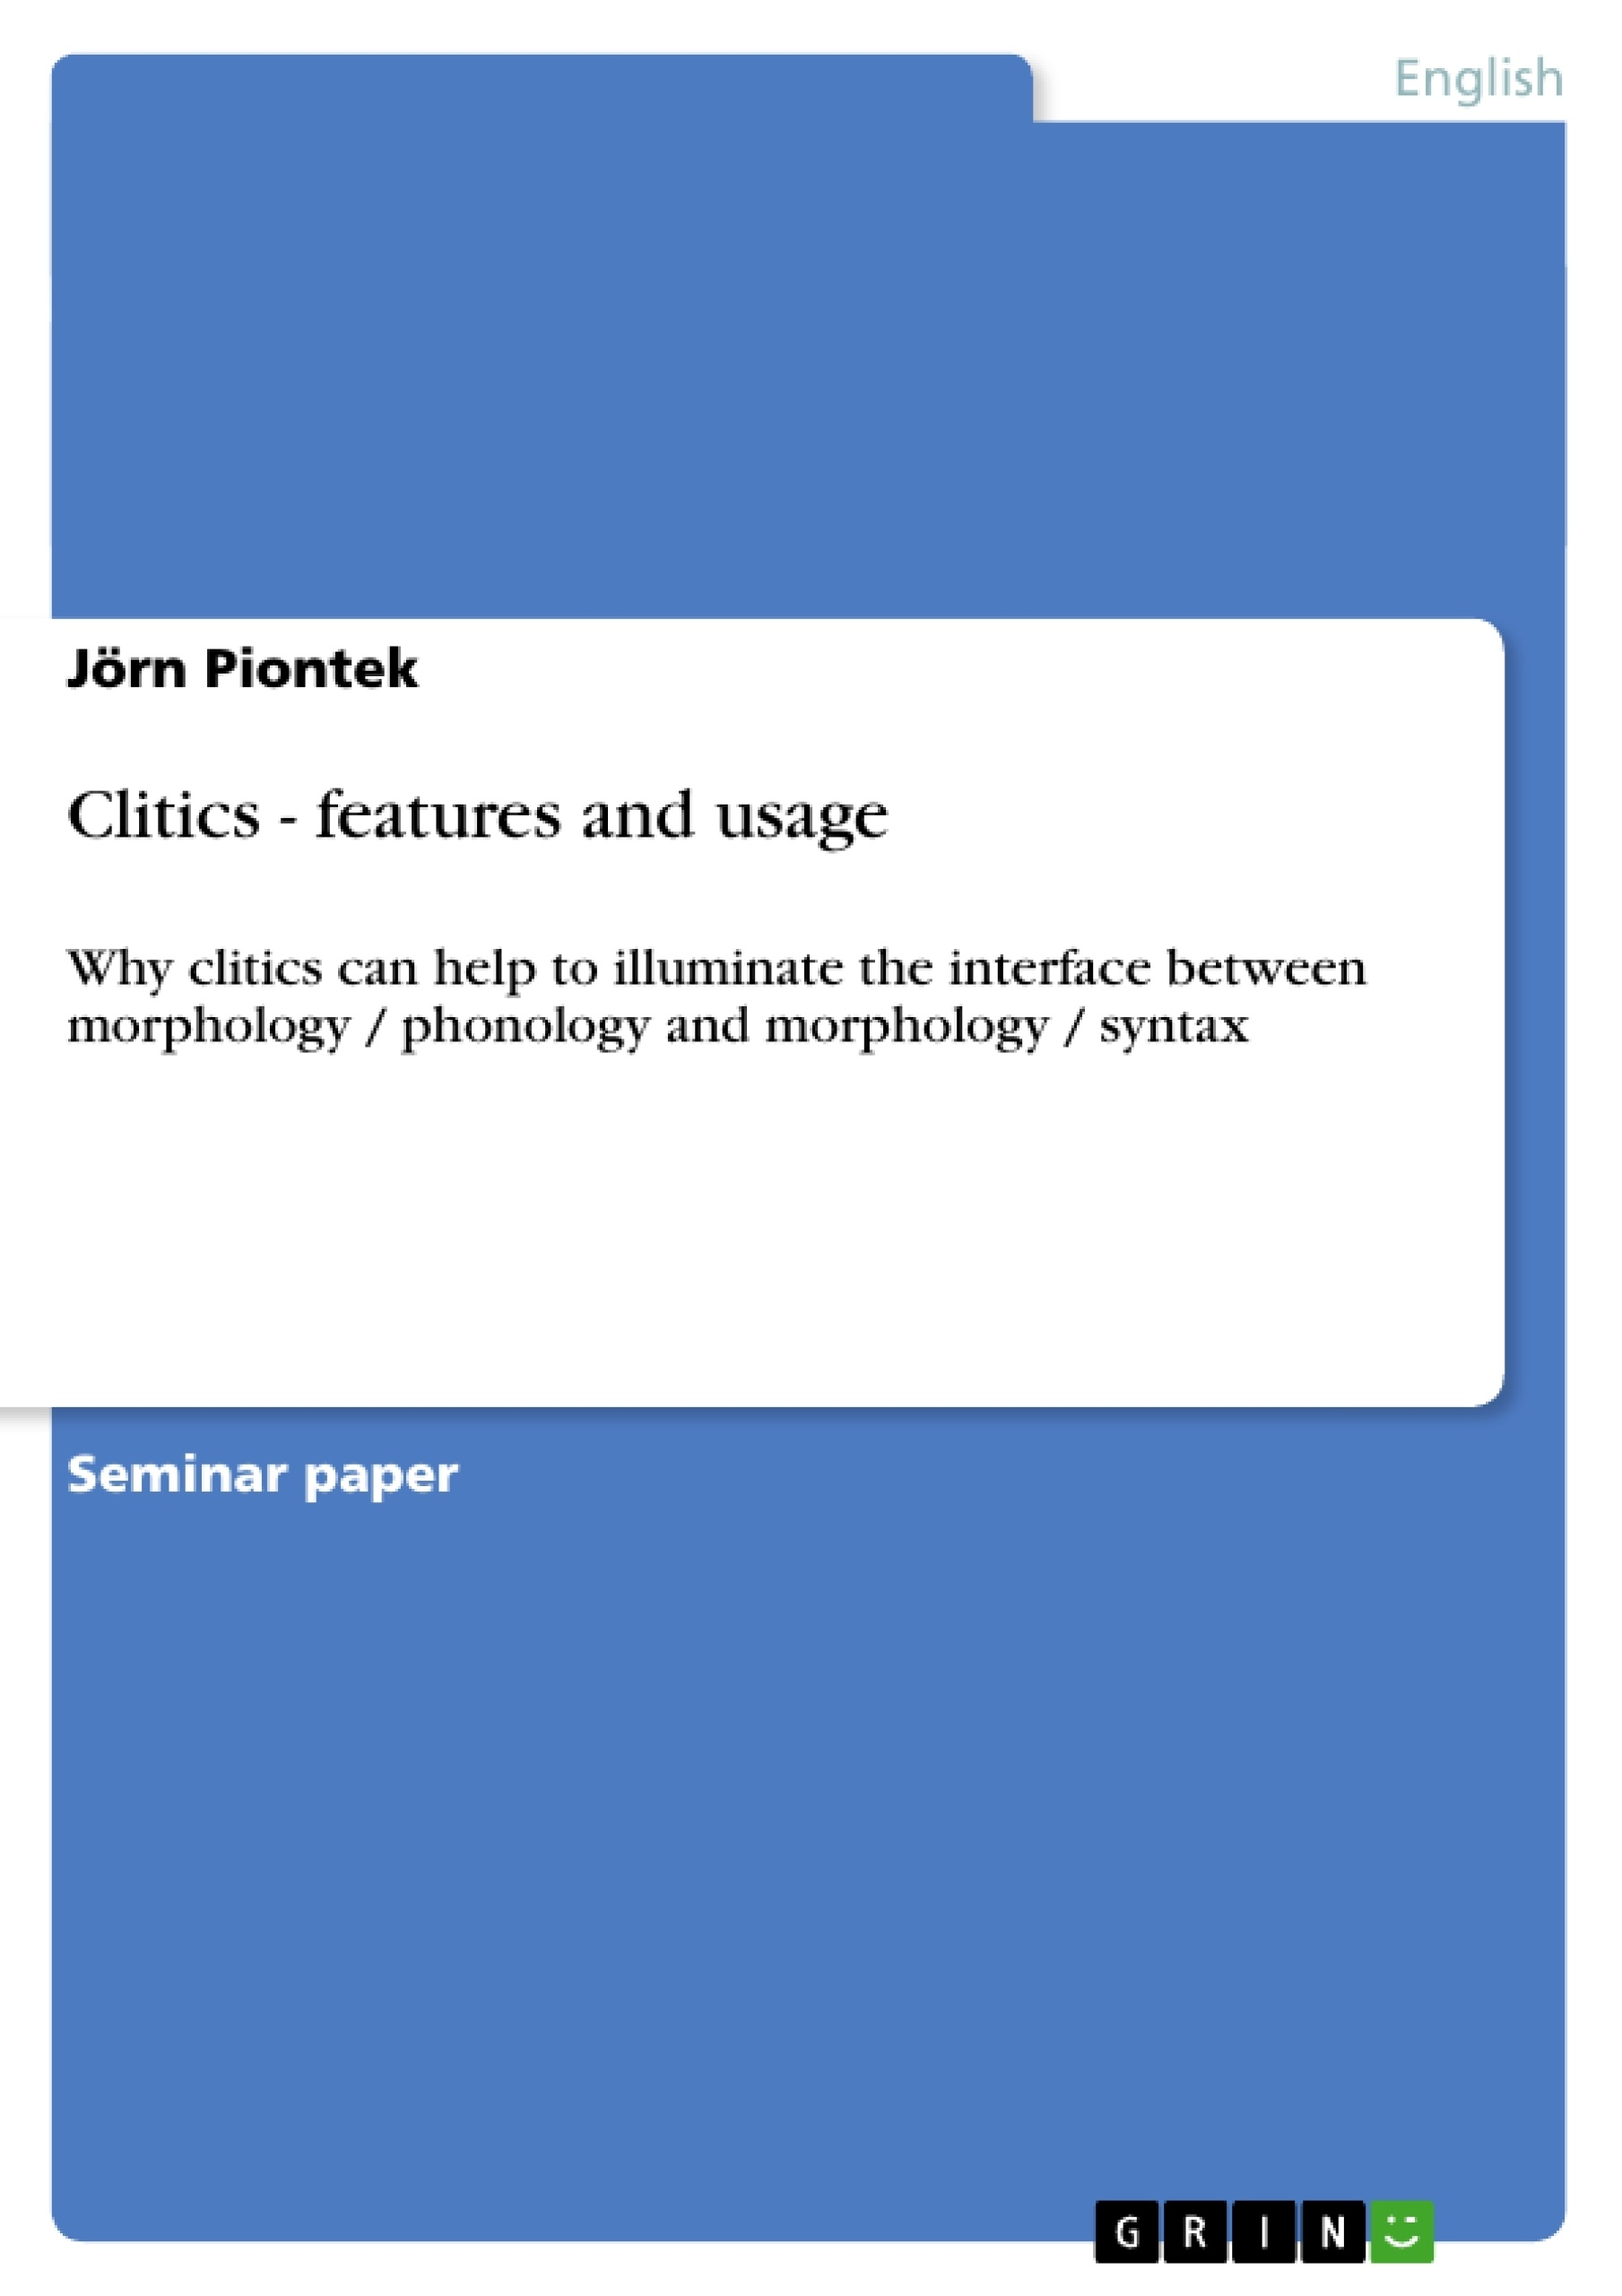 Title: Clitics - features and usage